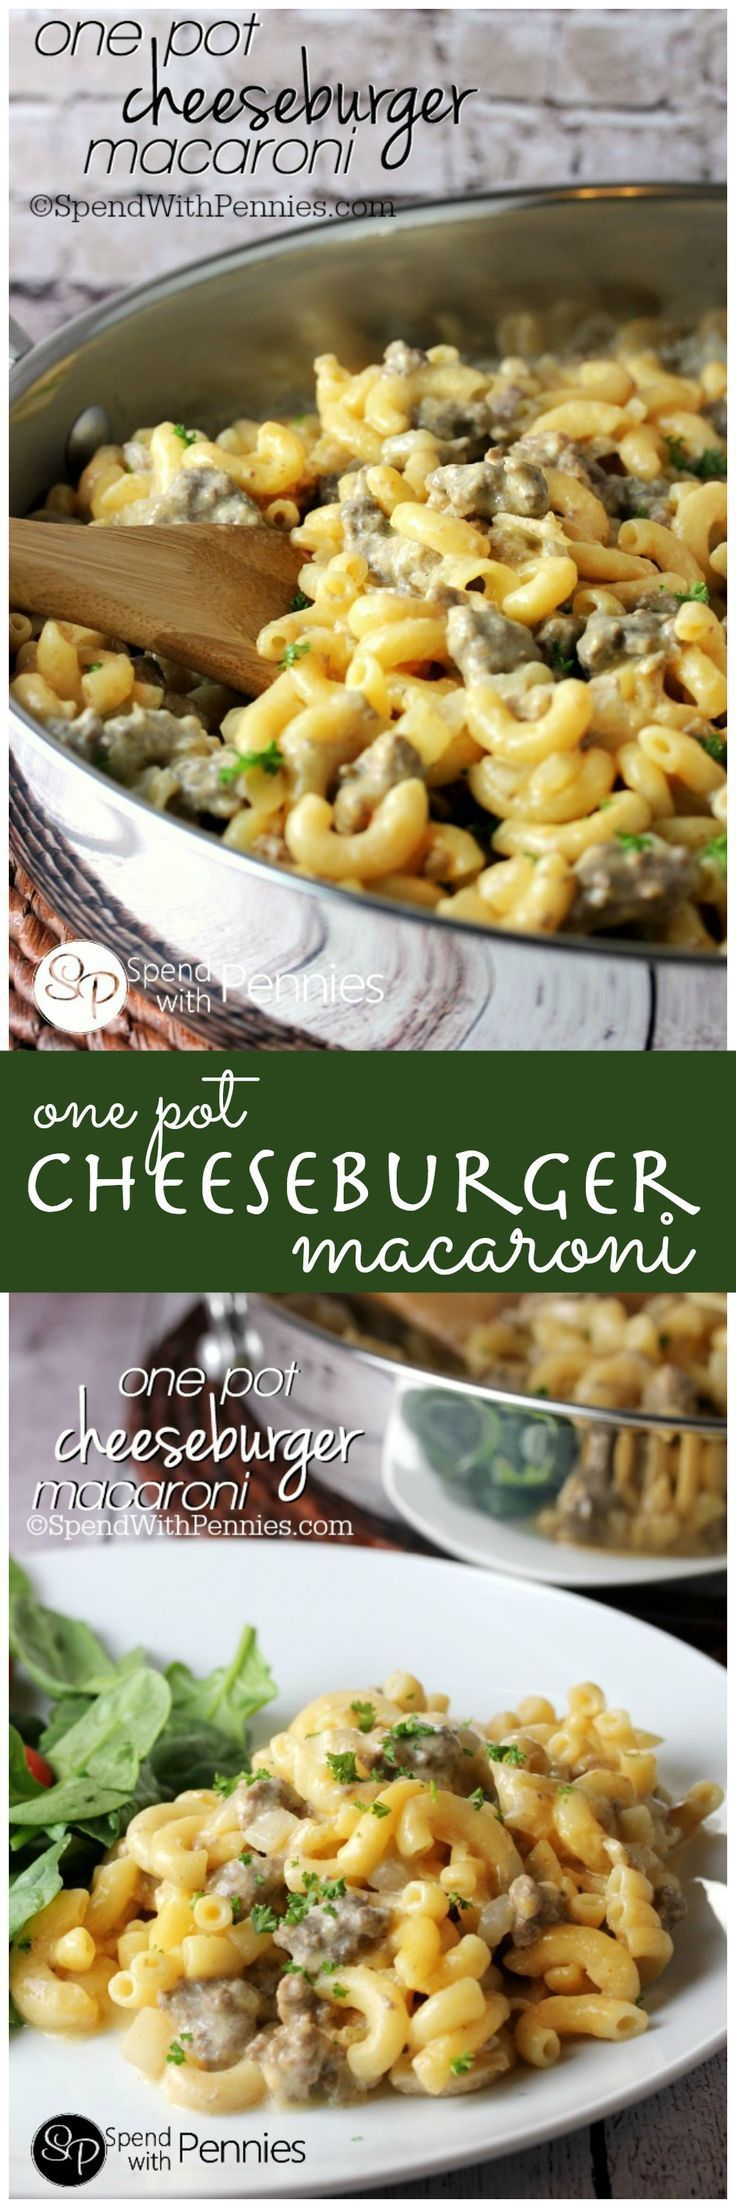 One Pot Cheeseburger Macaroni!  So easy and delicious, you'll never buy boxed again!